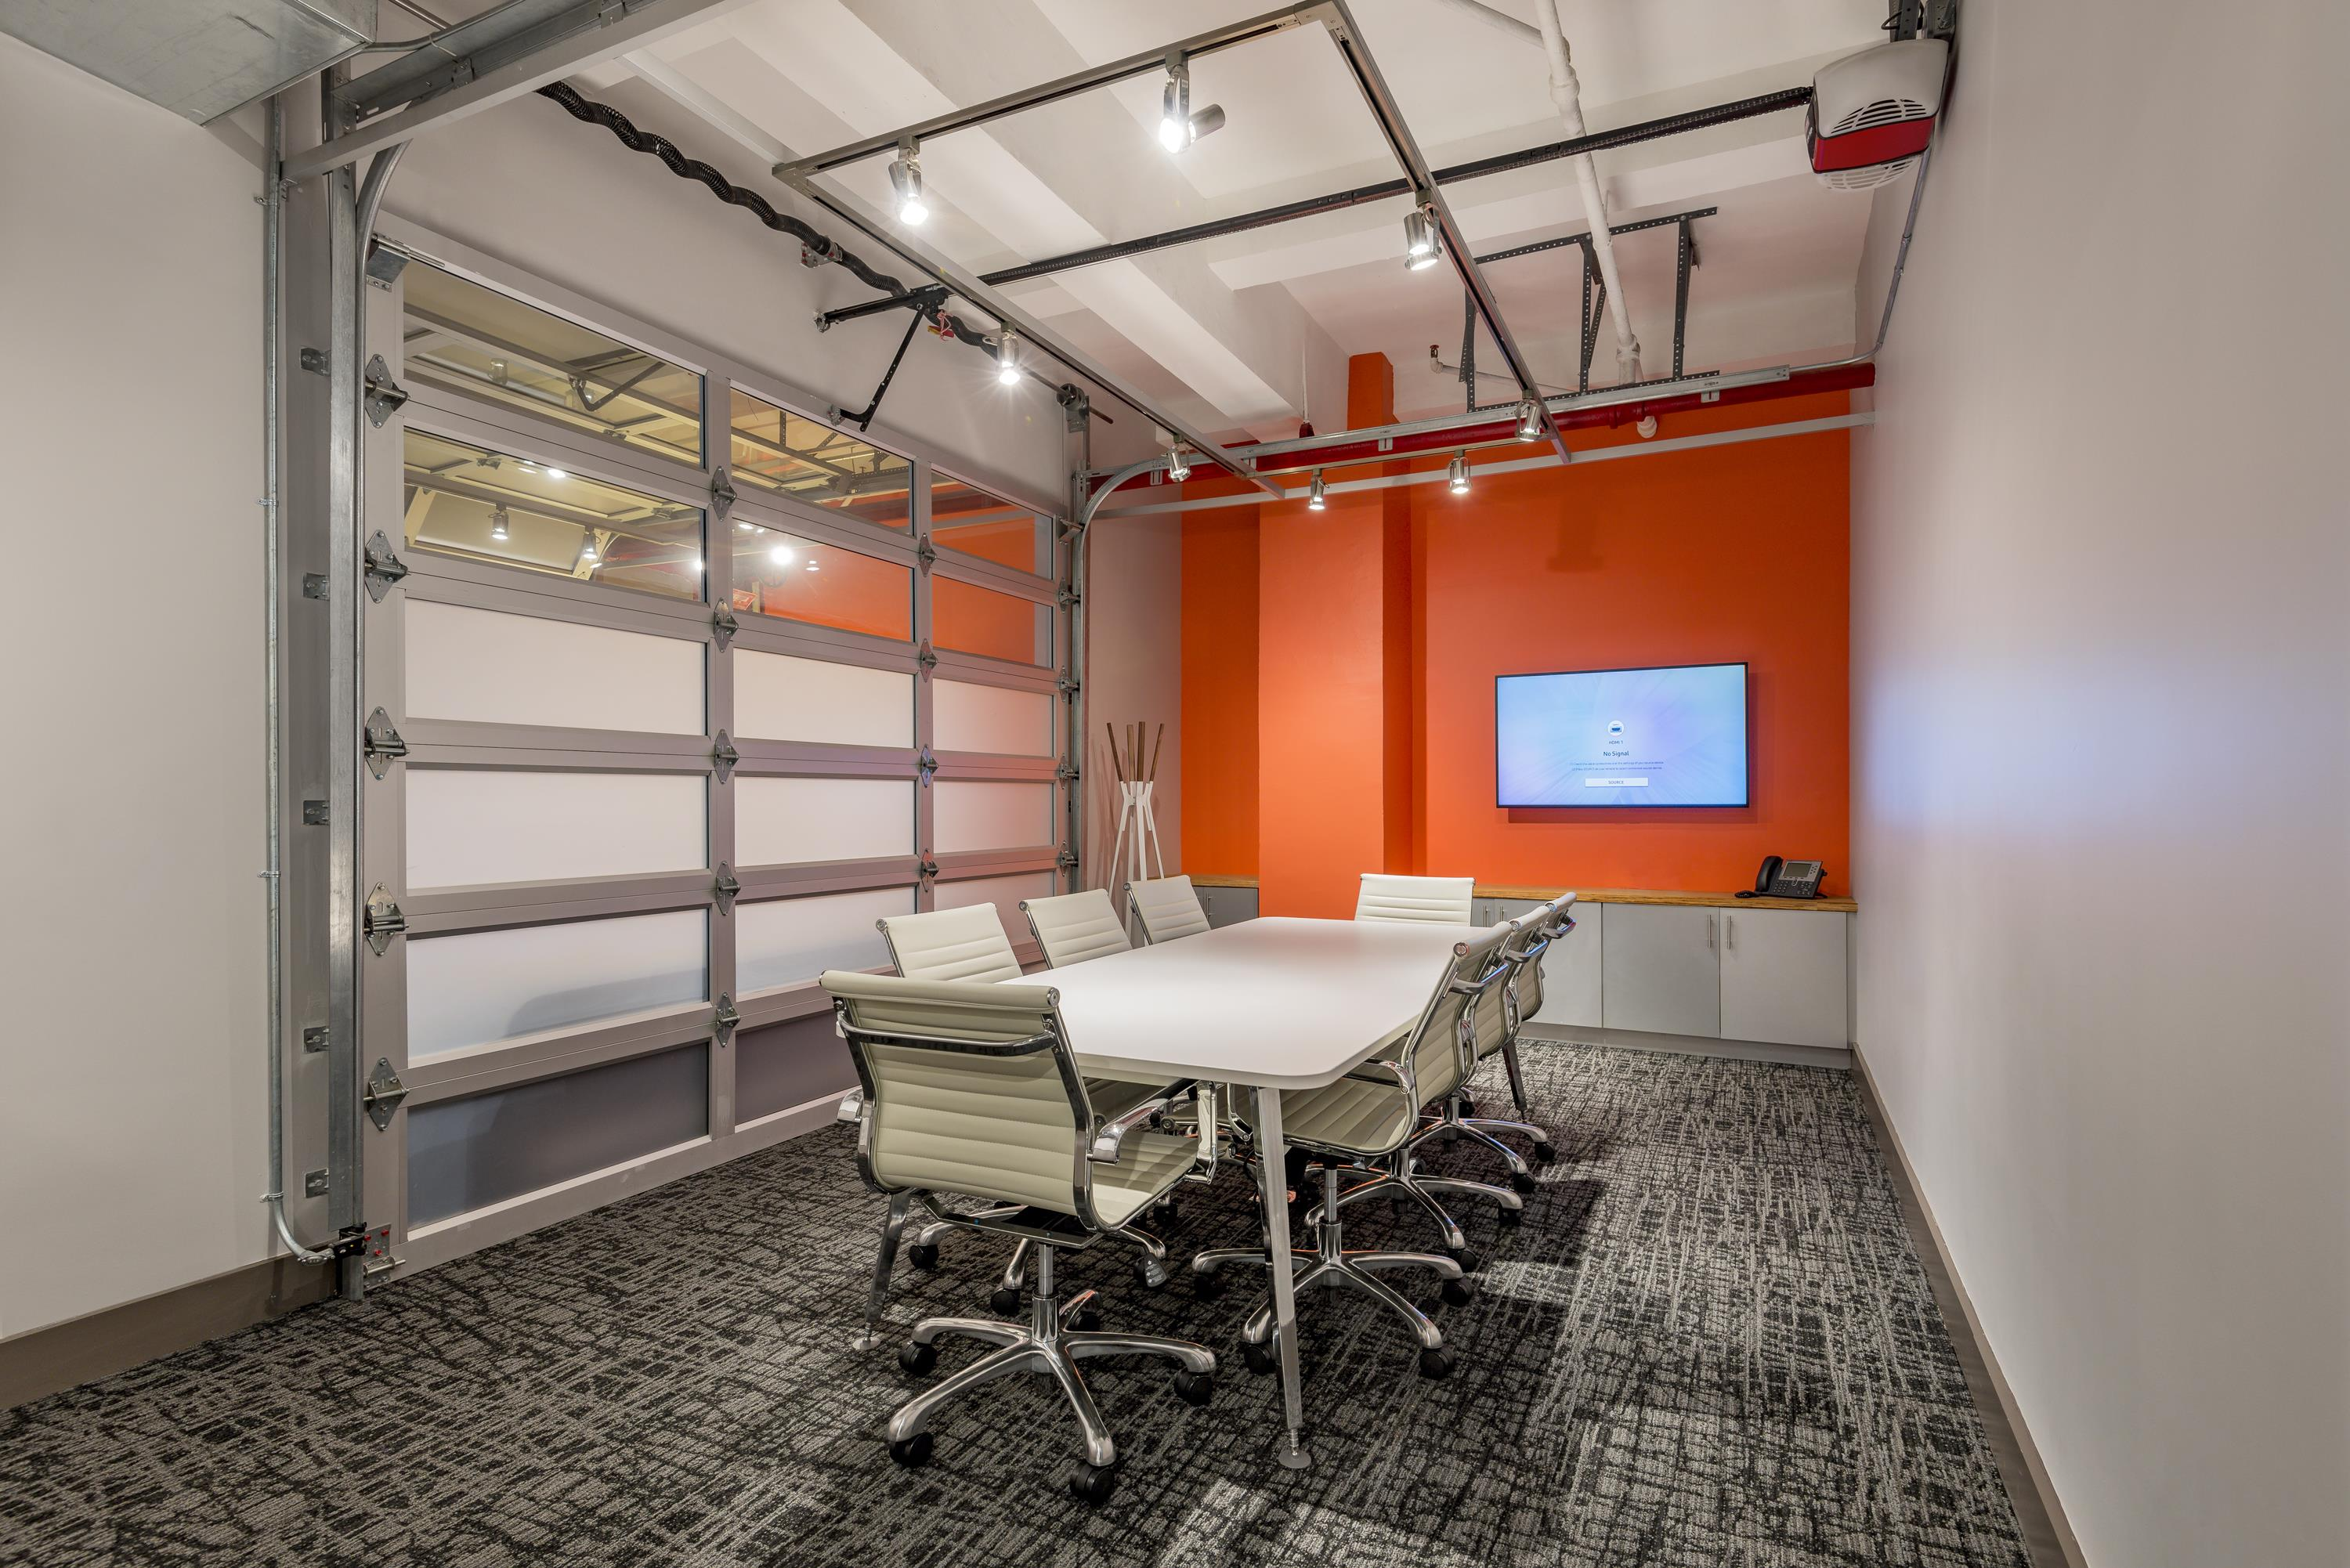 New York Ny 10011 Meeting Rooms Amp Conference Spaces For